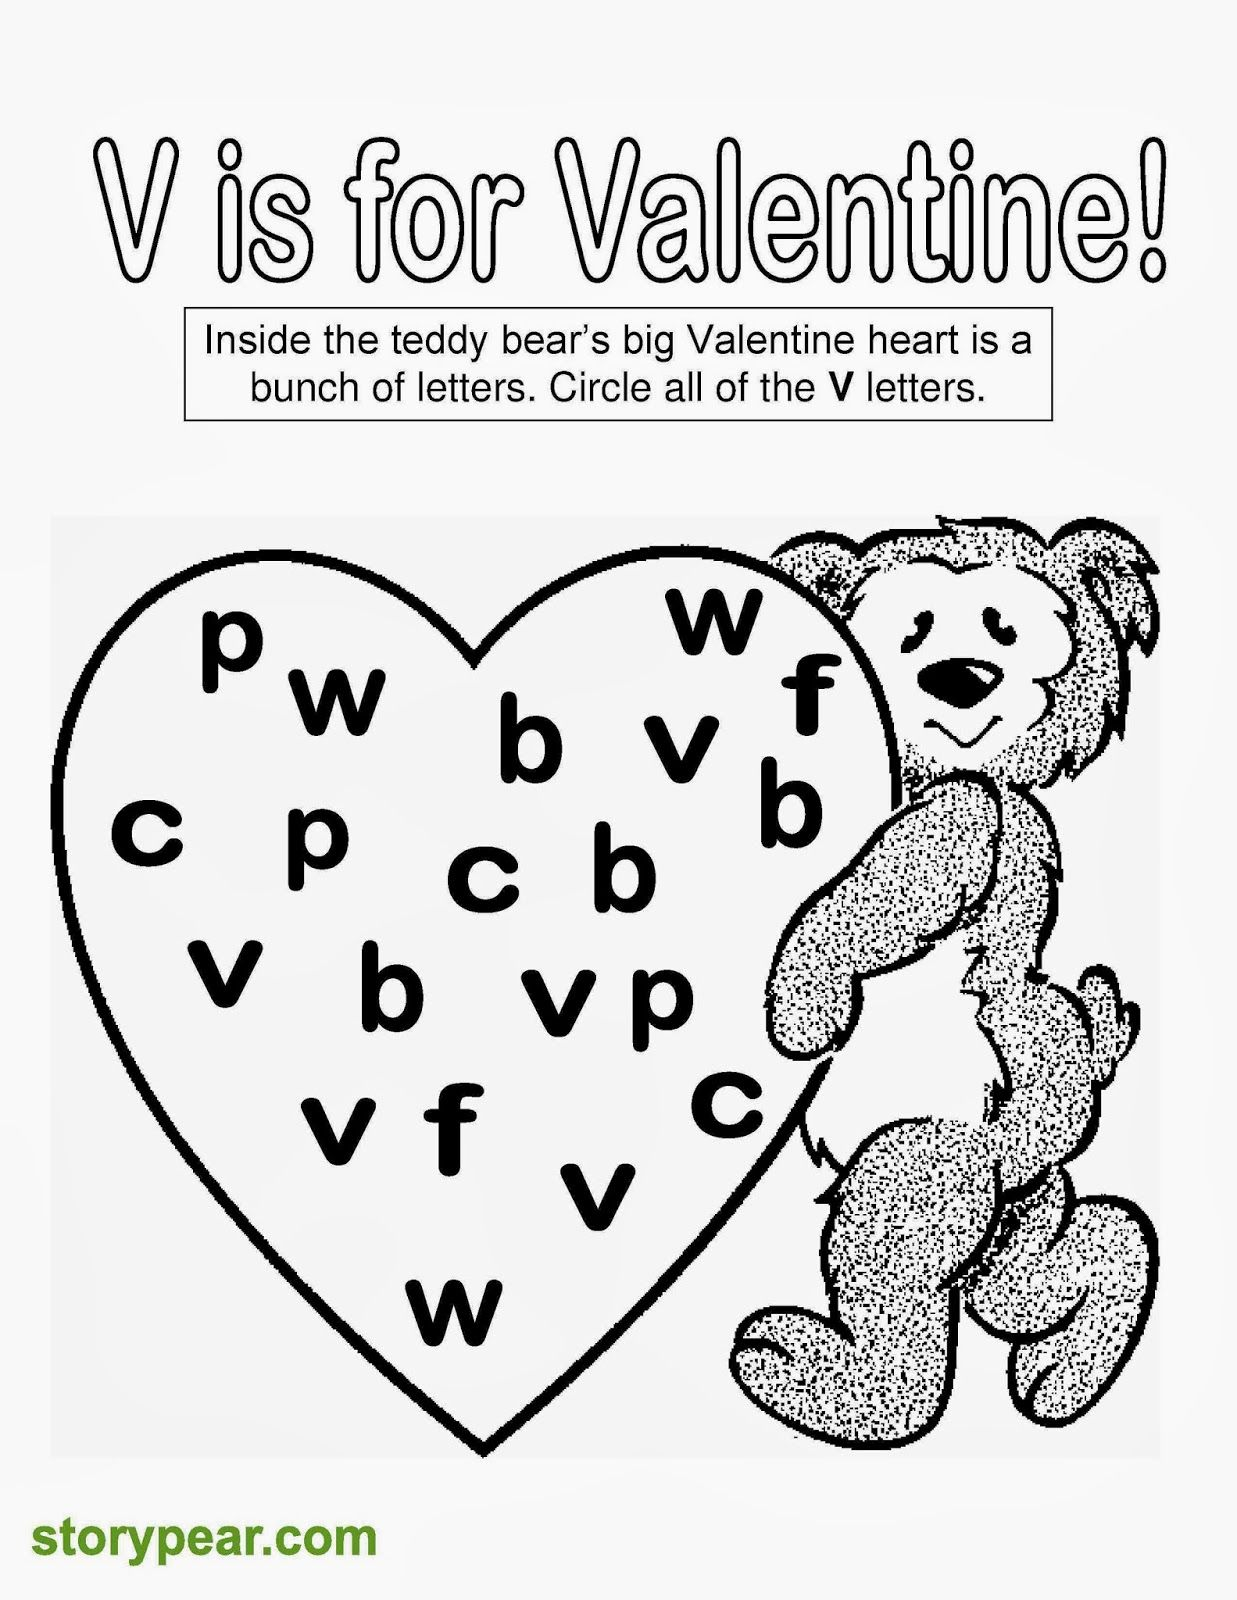 worksheet Valentine Worksheets Free story pear free valentine days printable sheets for preschoolers preschoolers